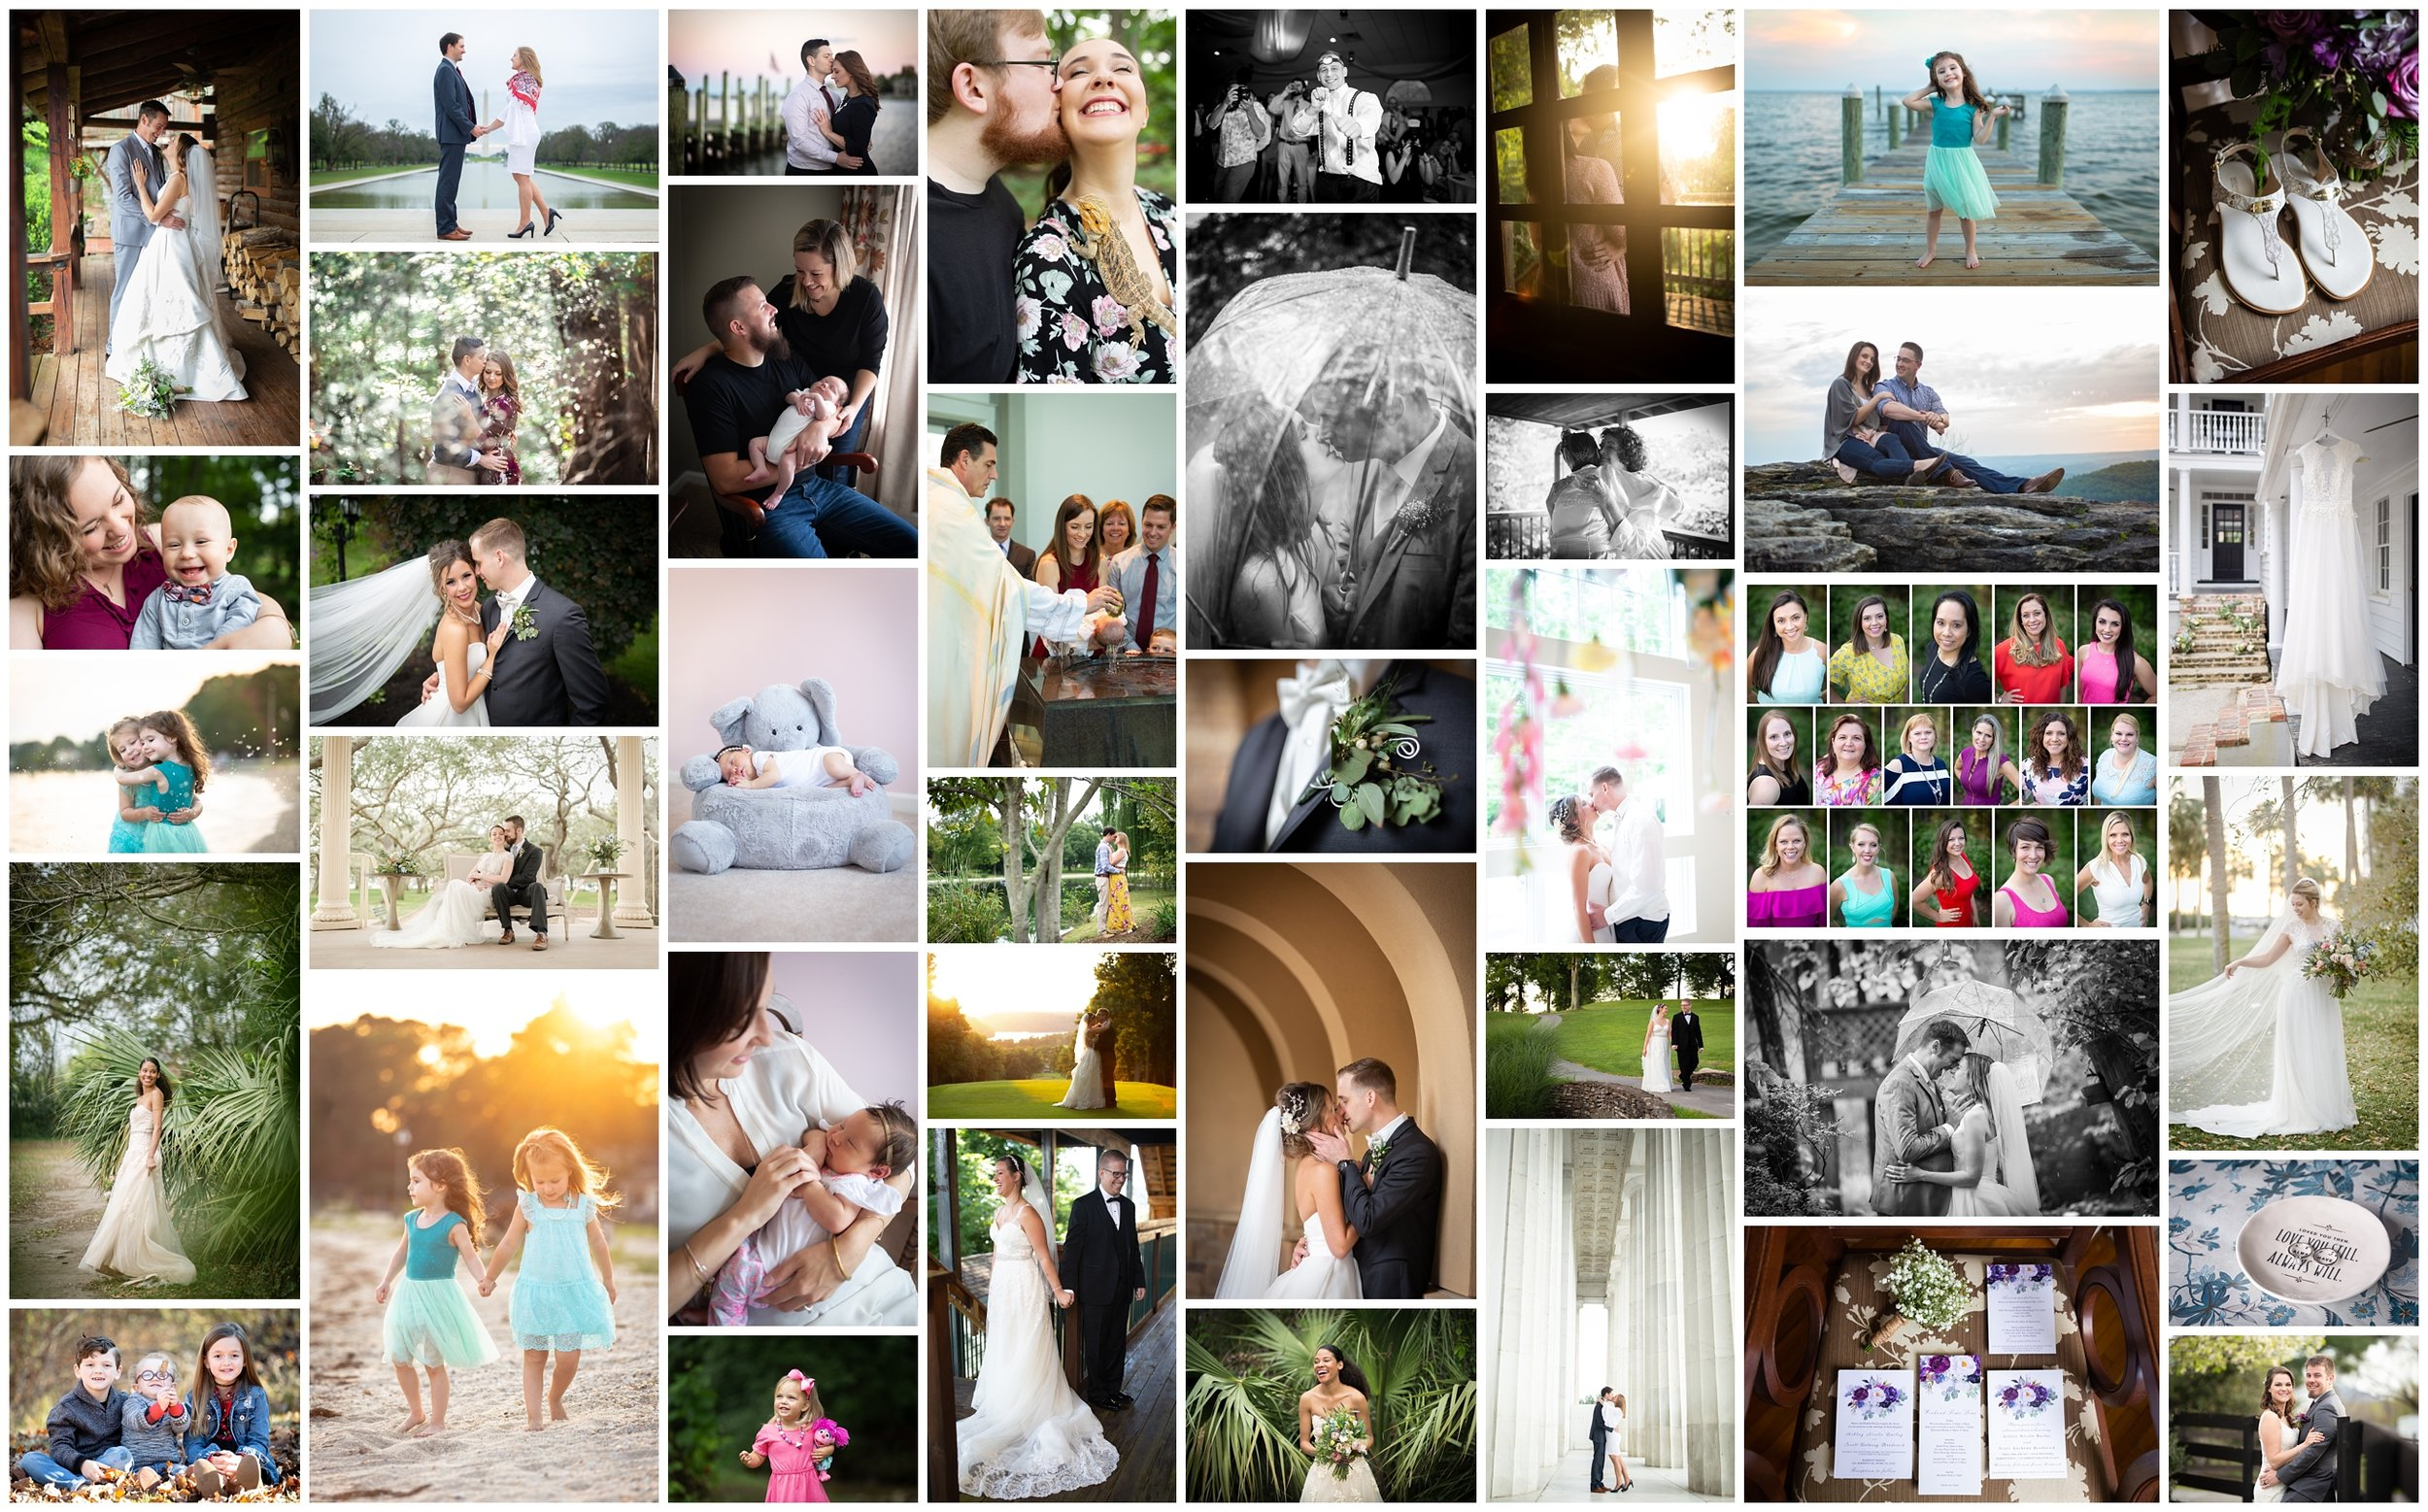 maryn graves productions, southern maryland photographer, dc wedding photographer, nova wedding photographer, MD wedding photographer, Virginia wedding photographer